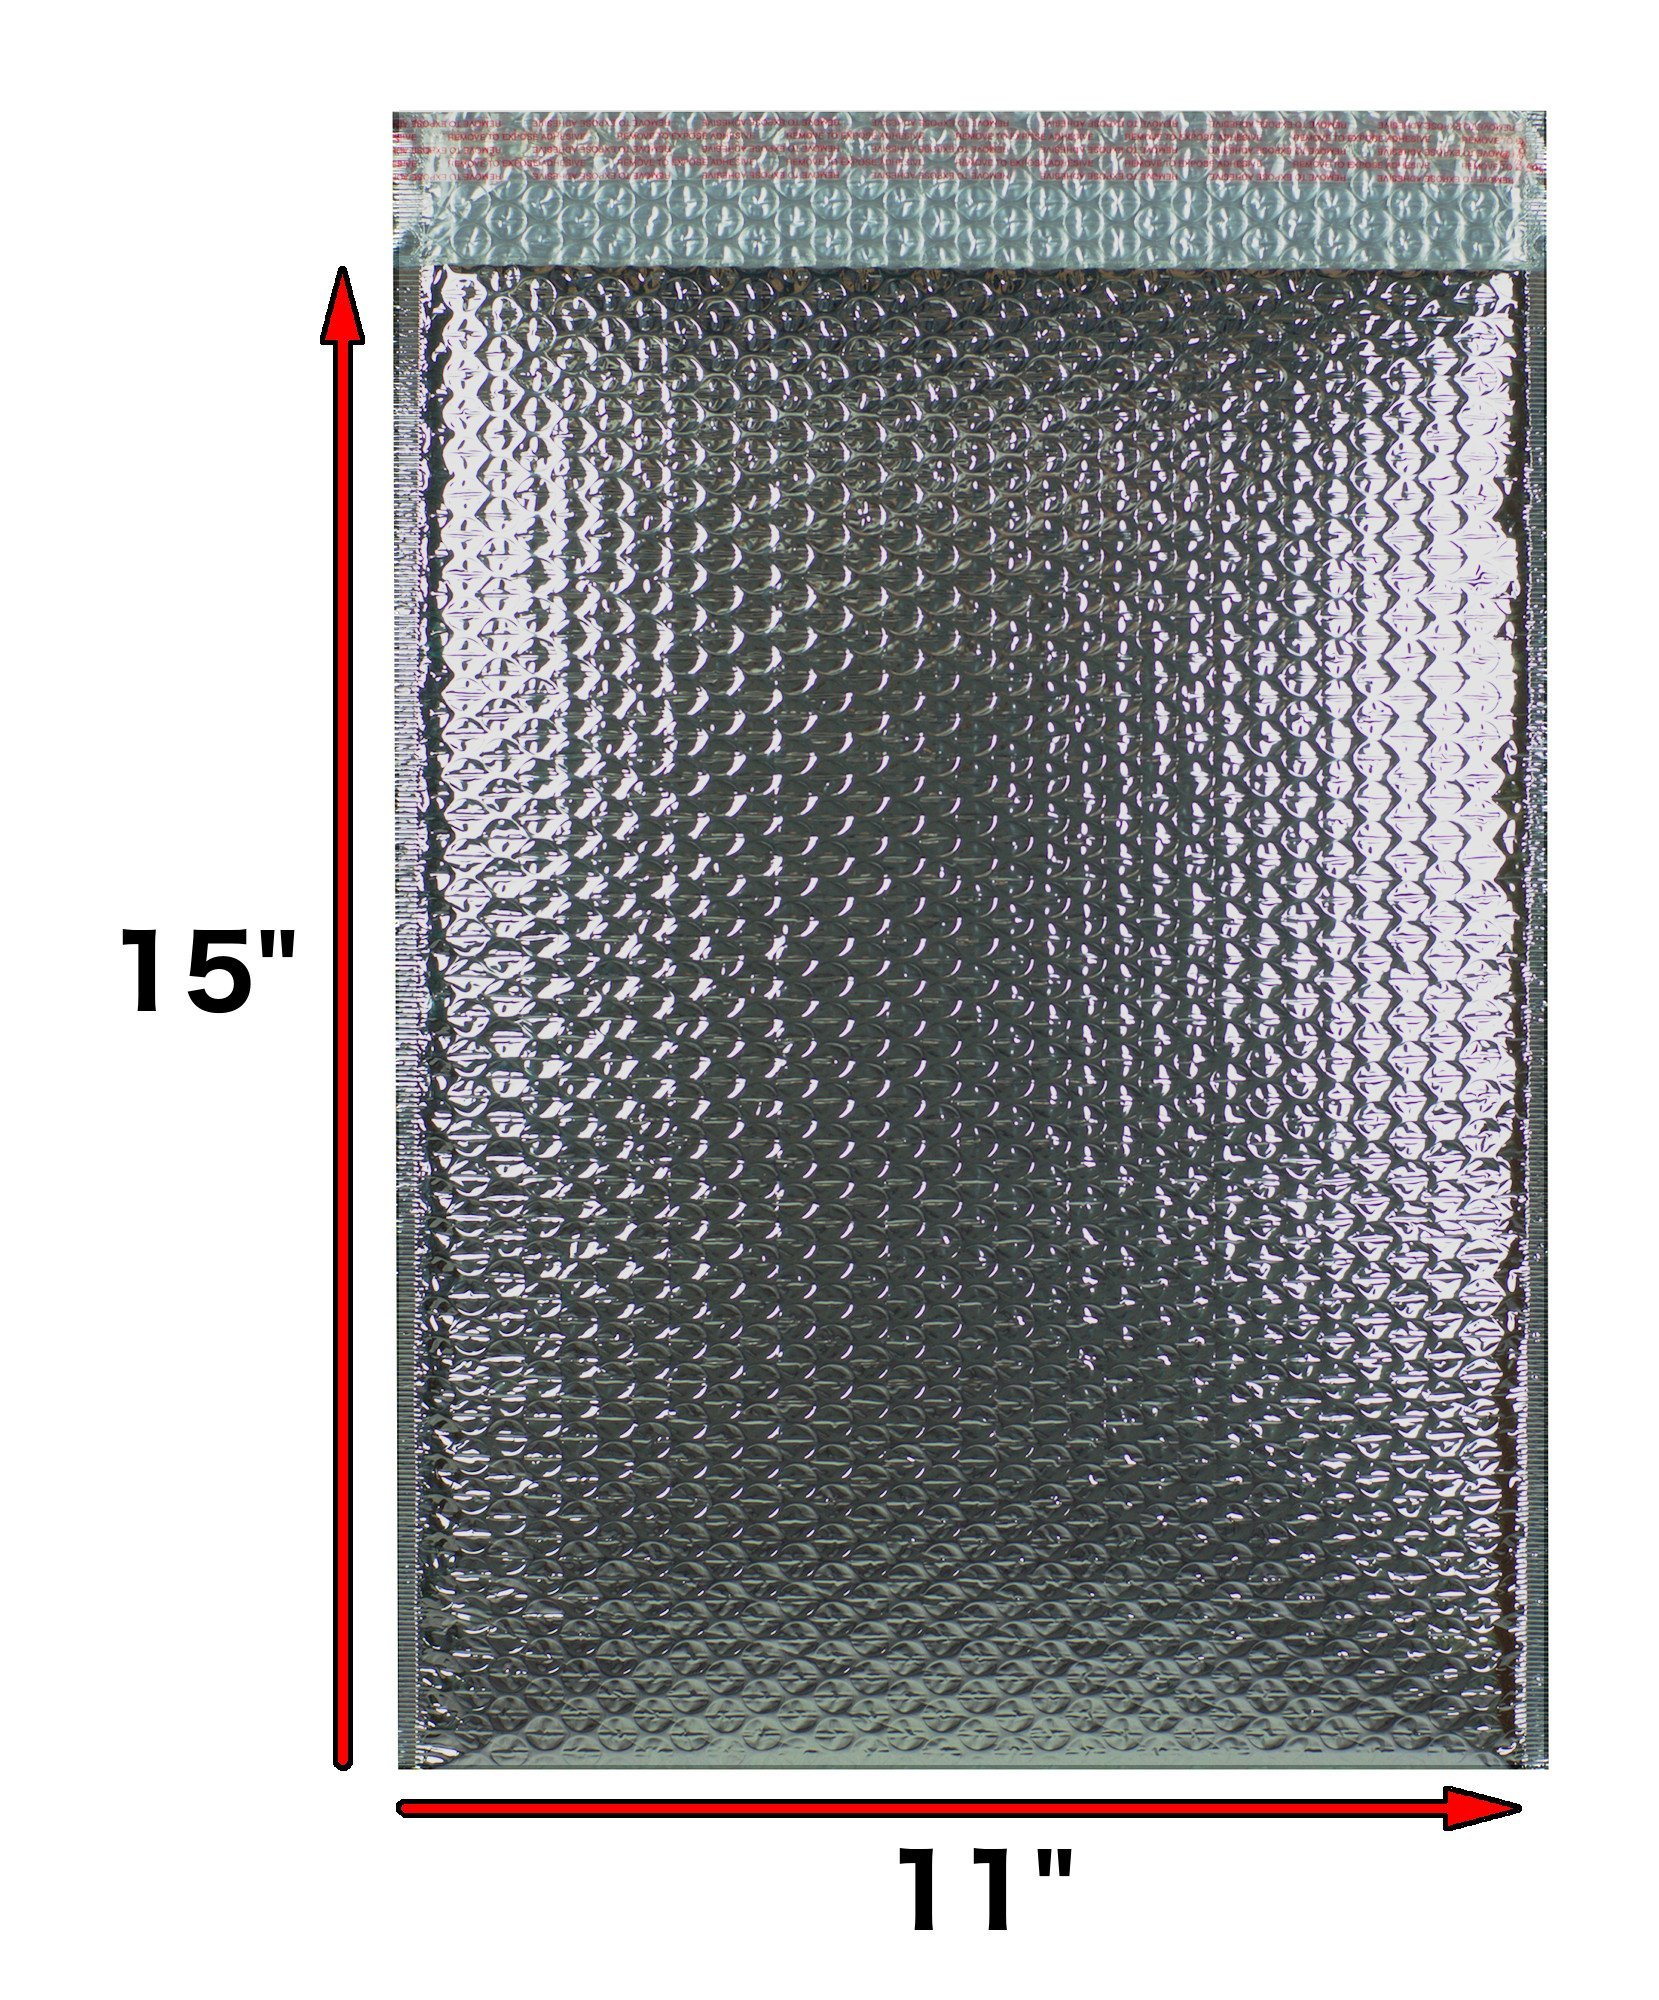 Thermal Insulated Bubble Mailers 11x15 Food Grade Padded envelopes 11 x 15 by Amiff. Pack of 10 Silver Cushion envelopes. Peel and Seal. Metallic foil. Mailing, Shipping, Packing, Packaging.